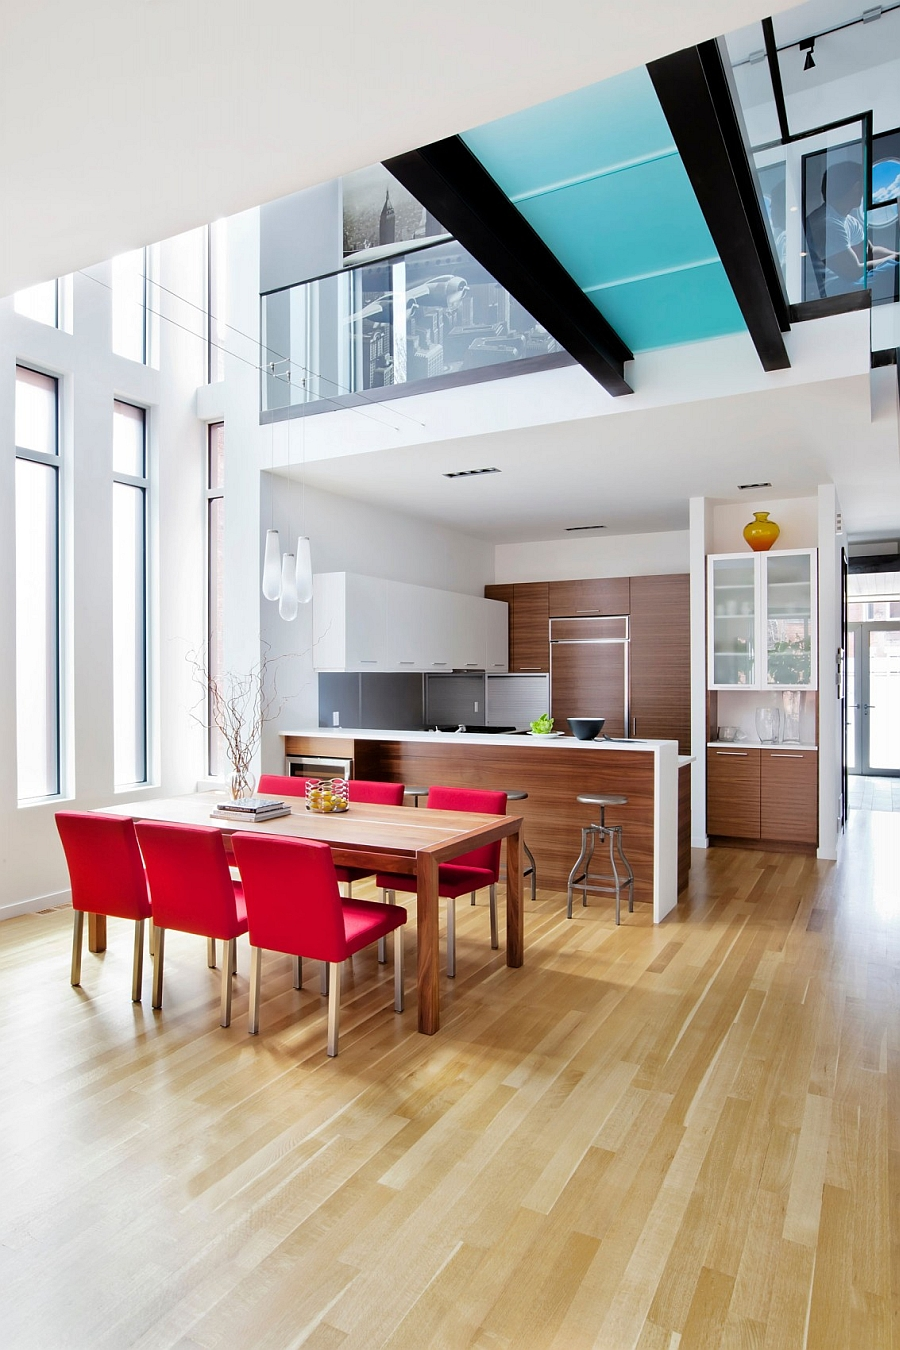 Dining table chairs add bright pops of red to the trendy interior